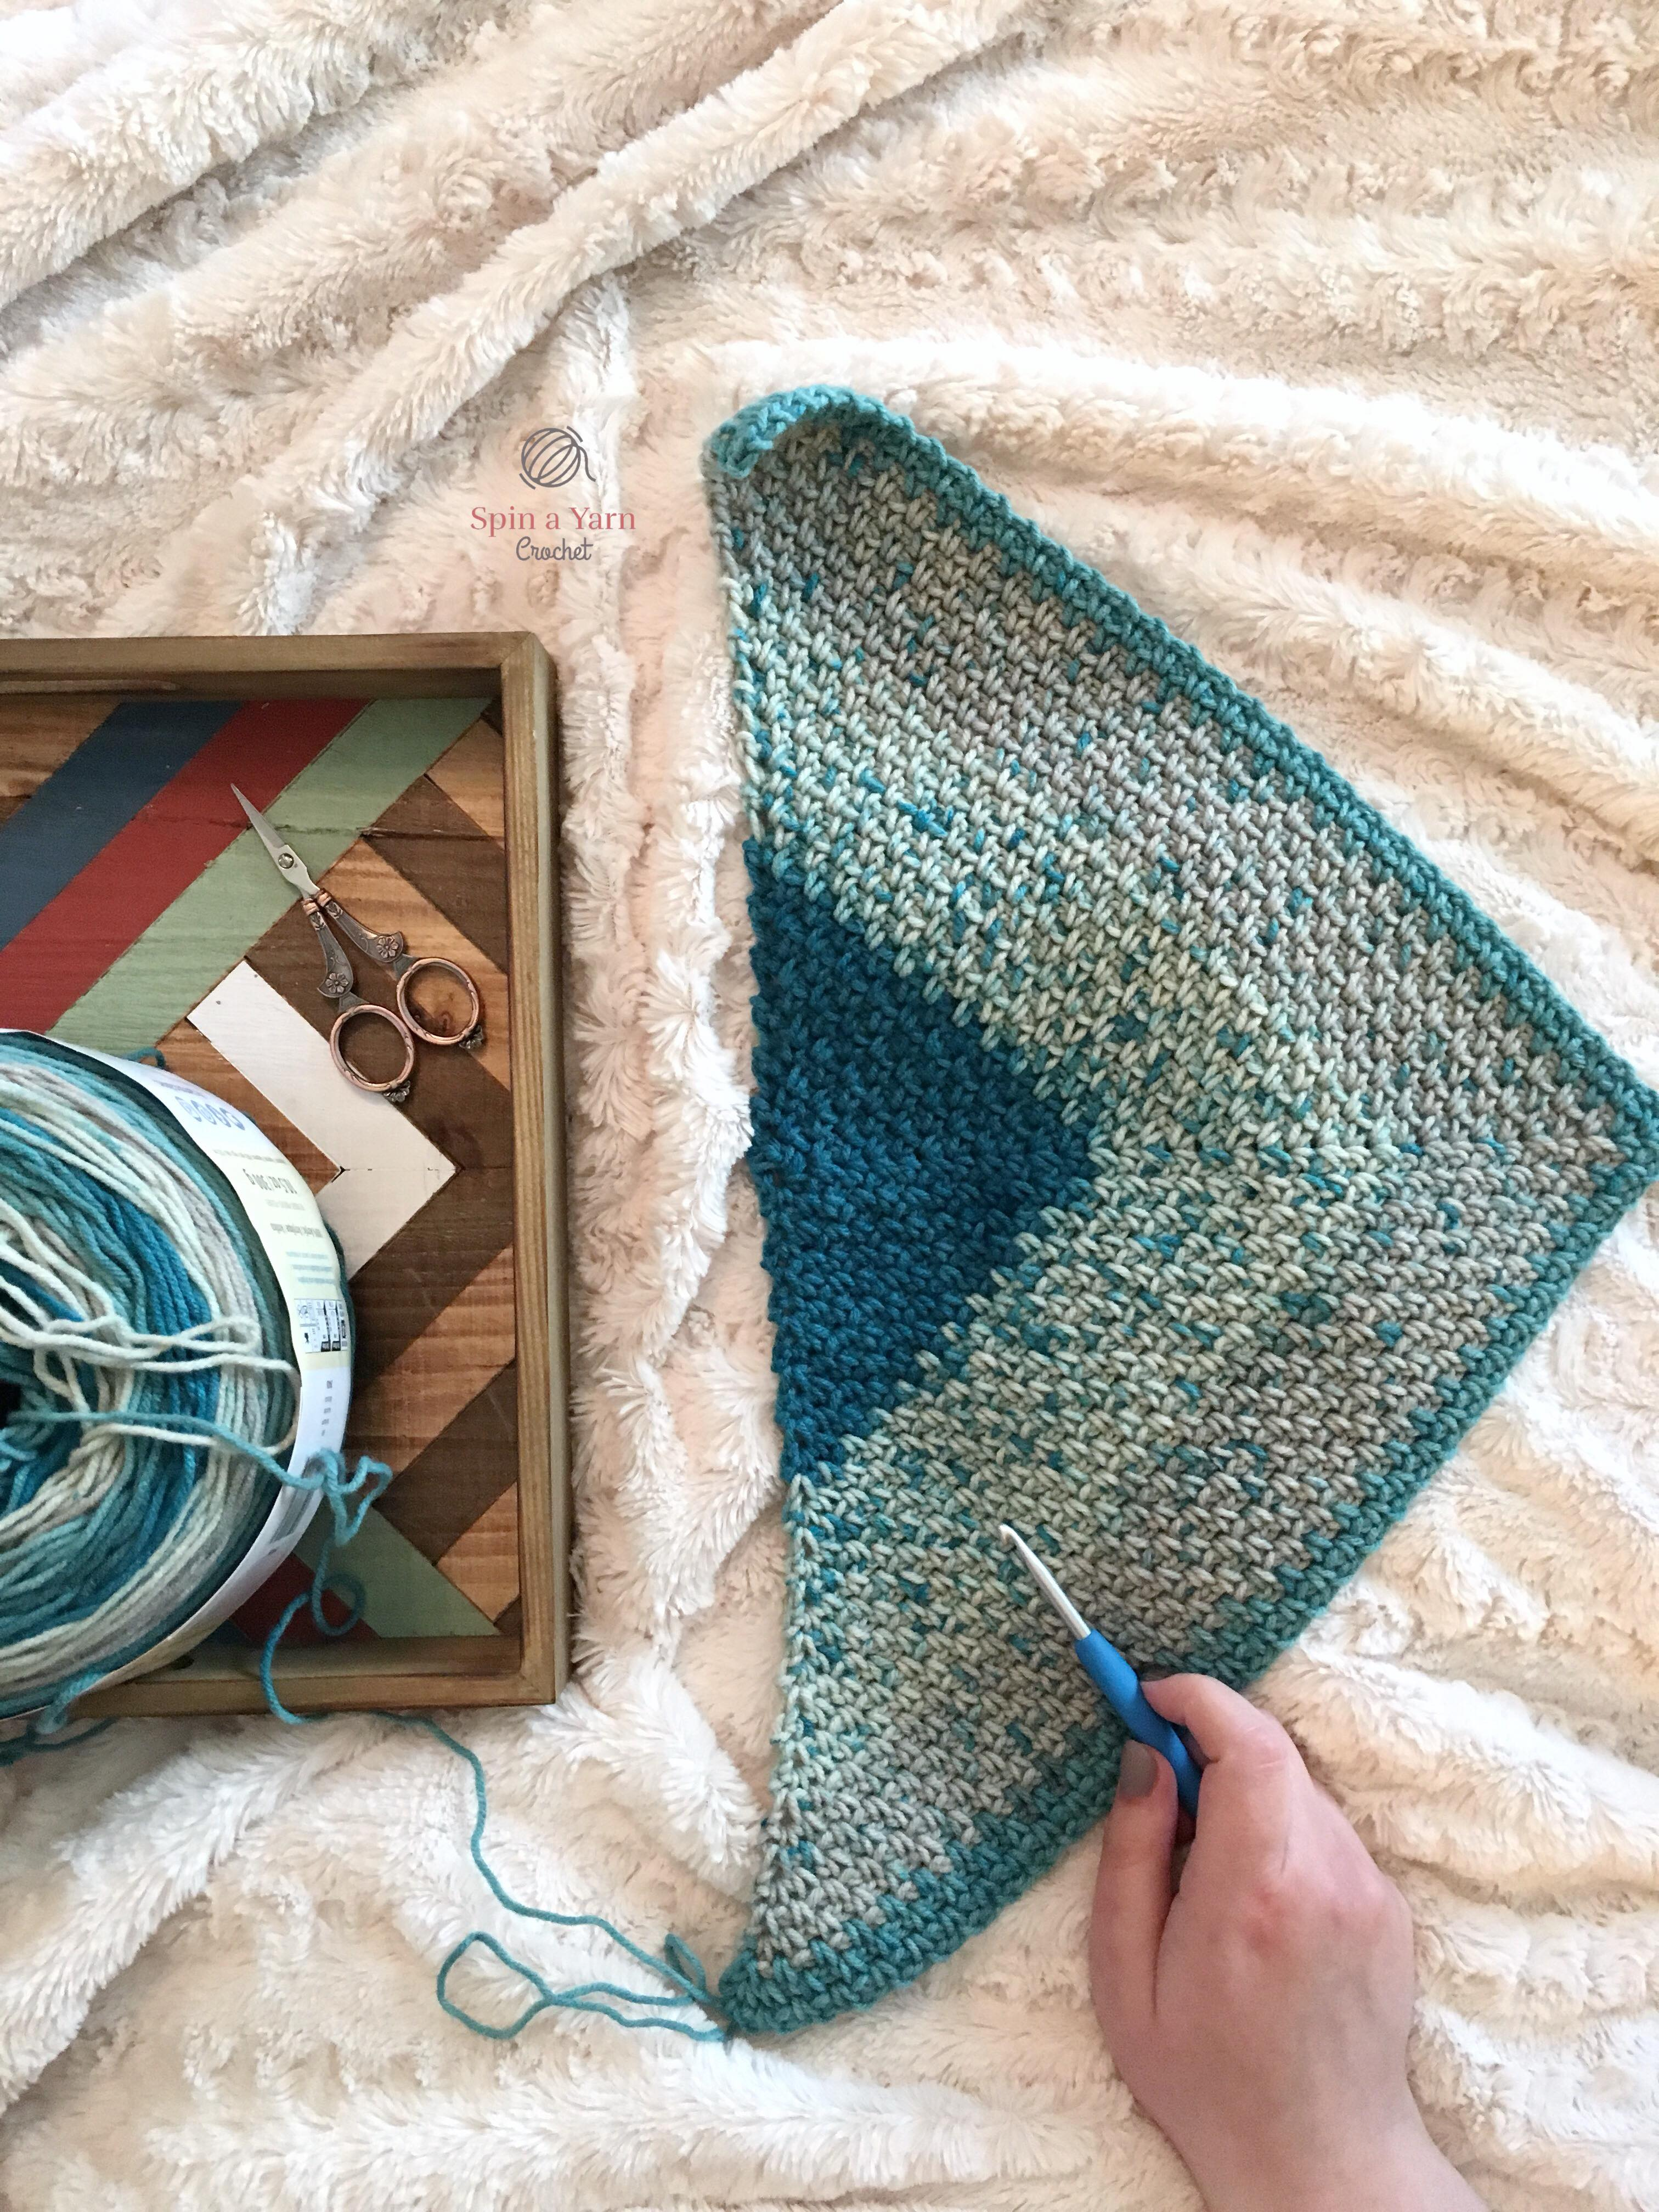 Moss Stitch and Caron Cakes • Spin a Yarn Crochet